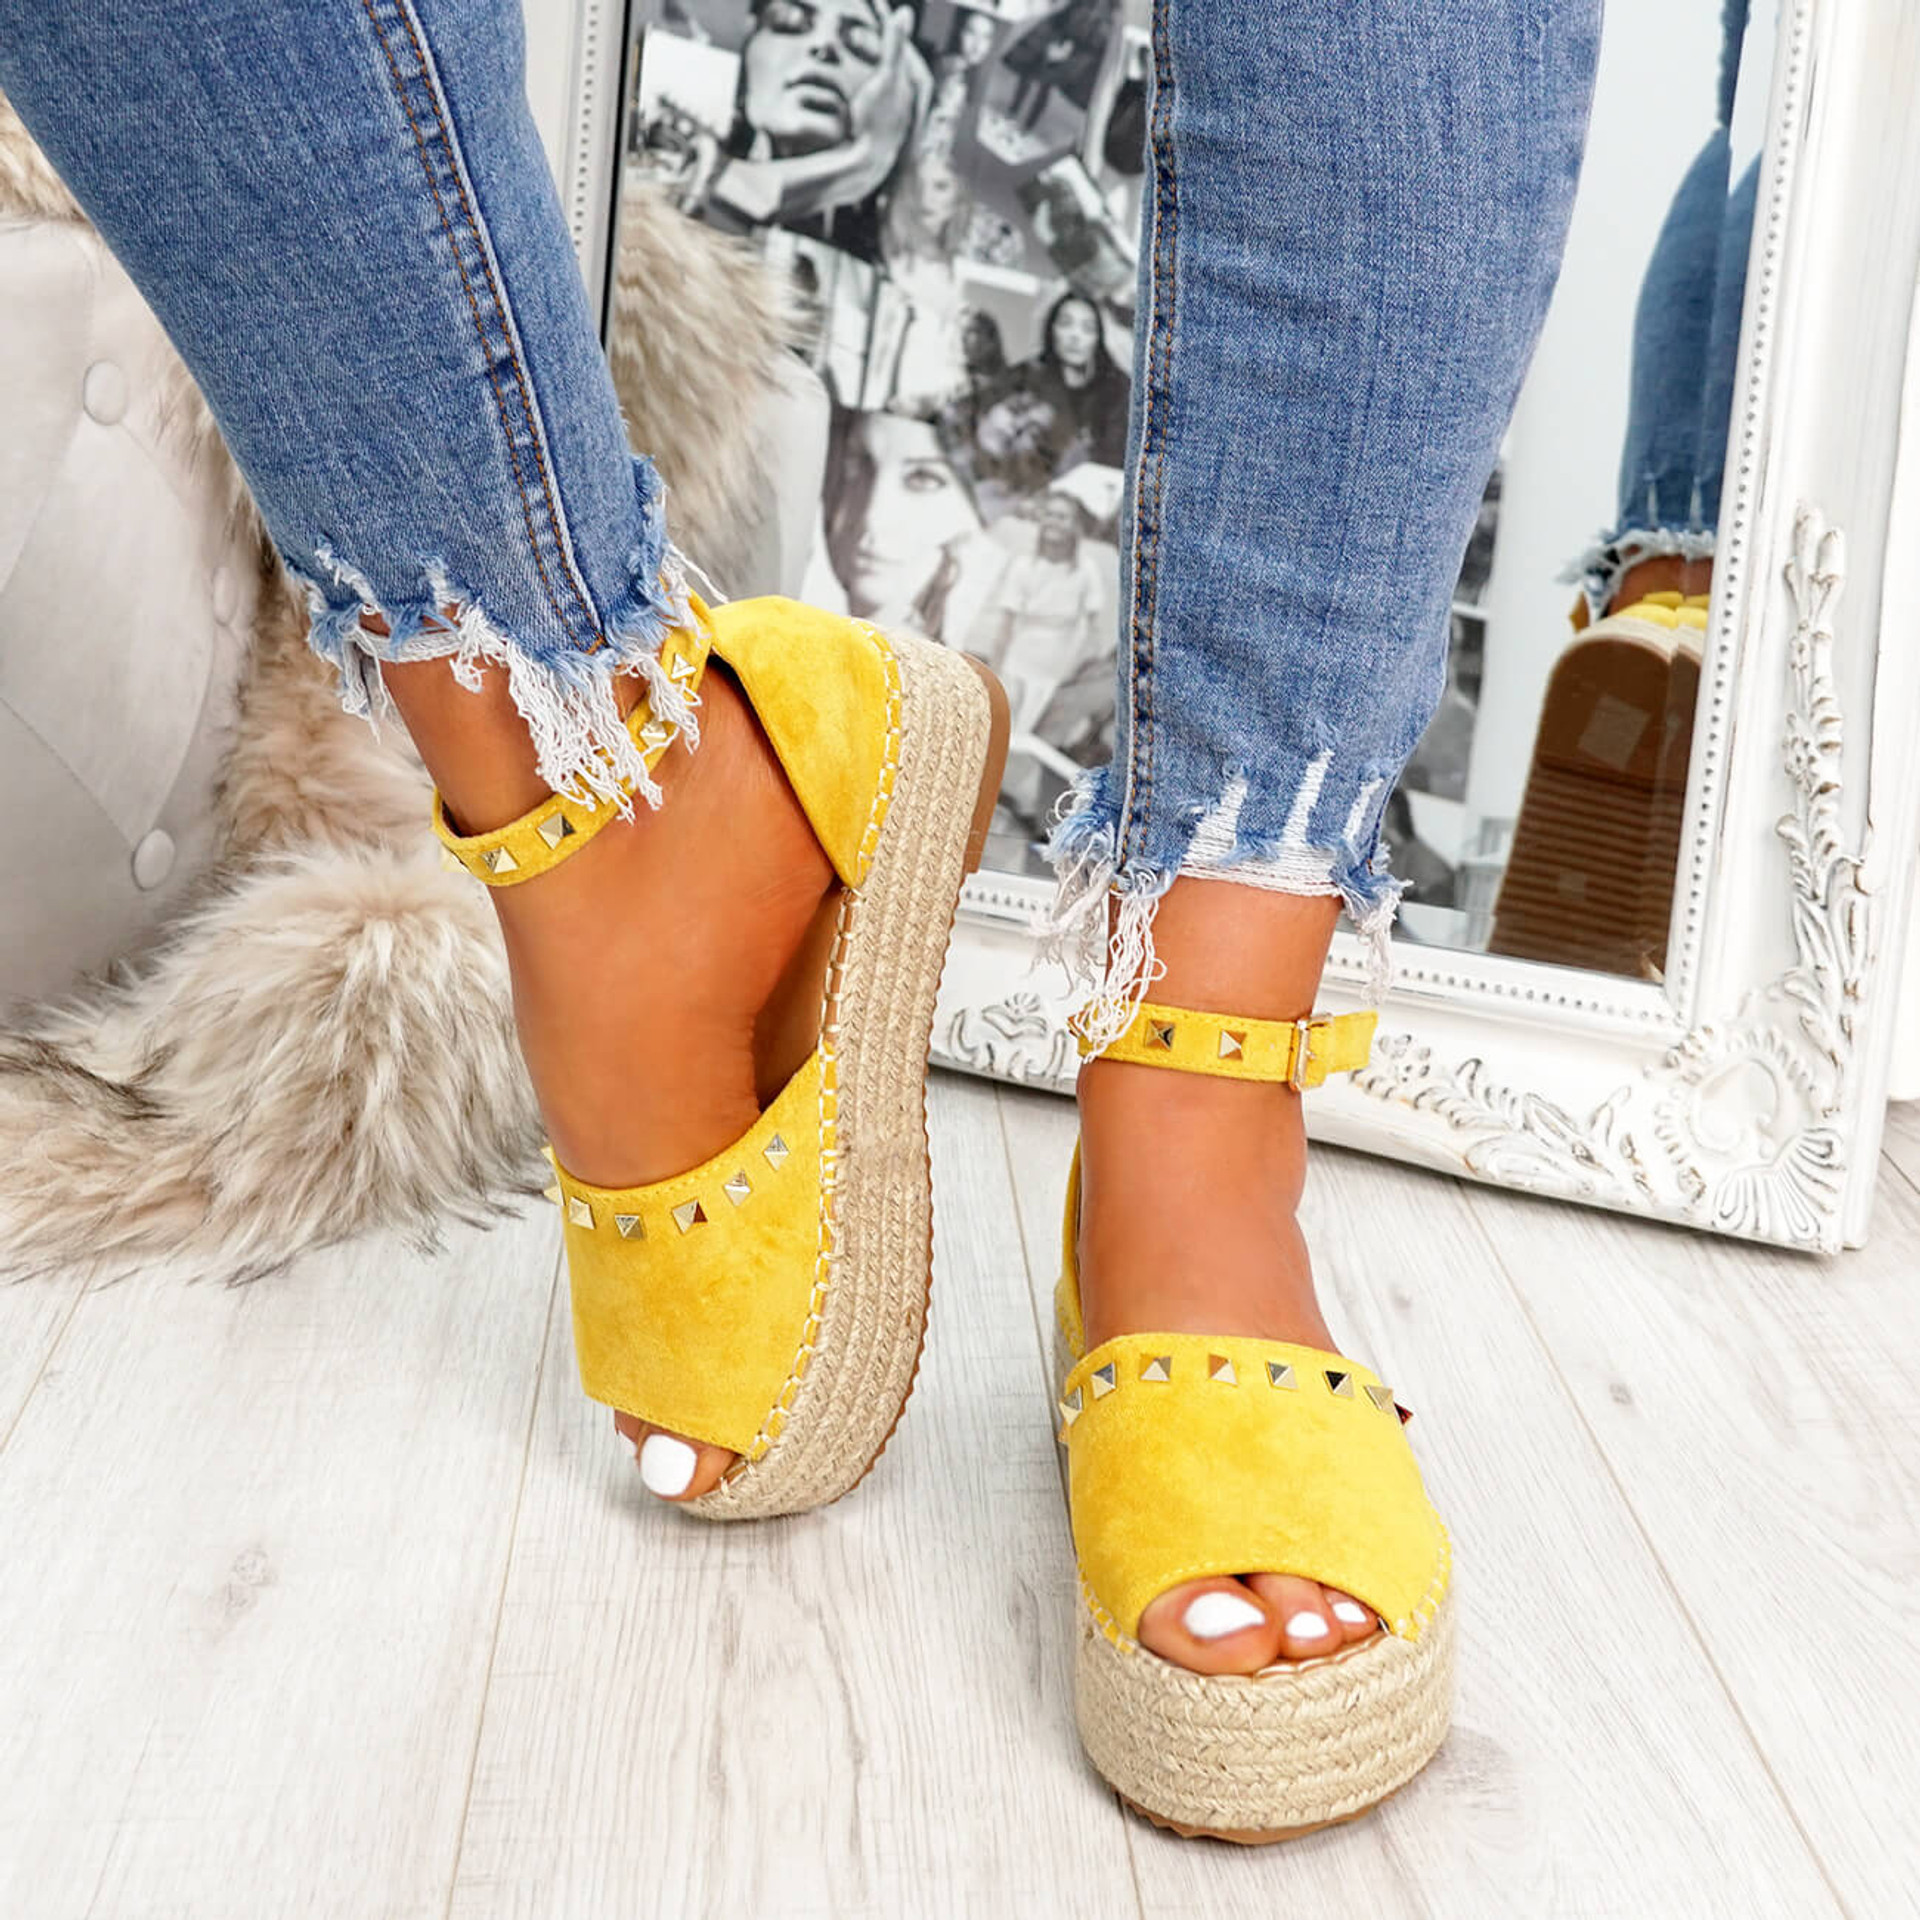 Womens Ladies Yellow Summer Party Sandals Fashion Flatform Platforms Rock Stud Ankle Strap High Heels Shoes Size Uk 3 4 5 6 7 8